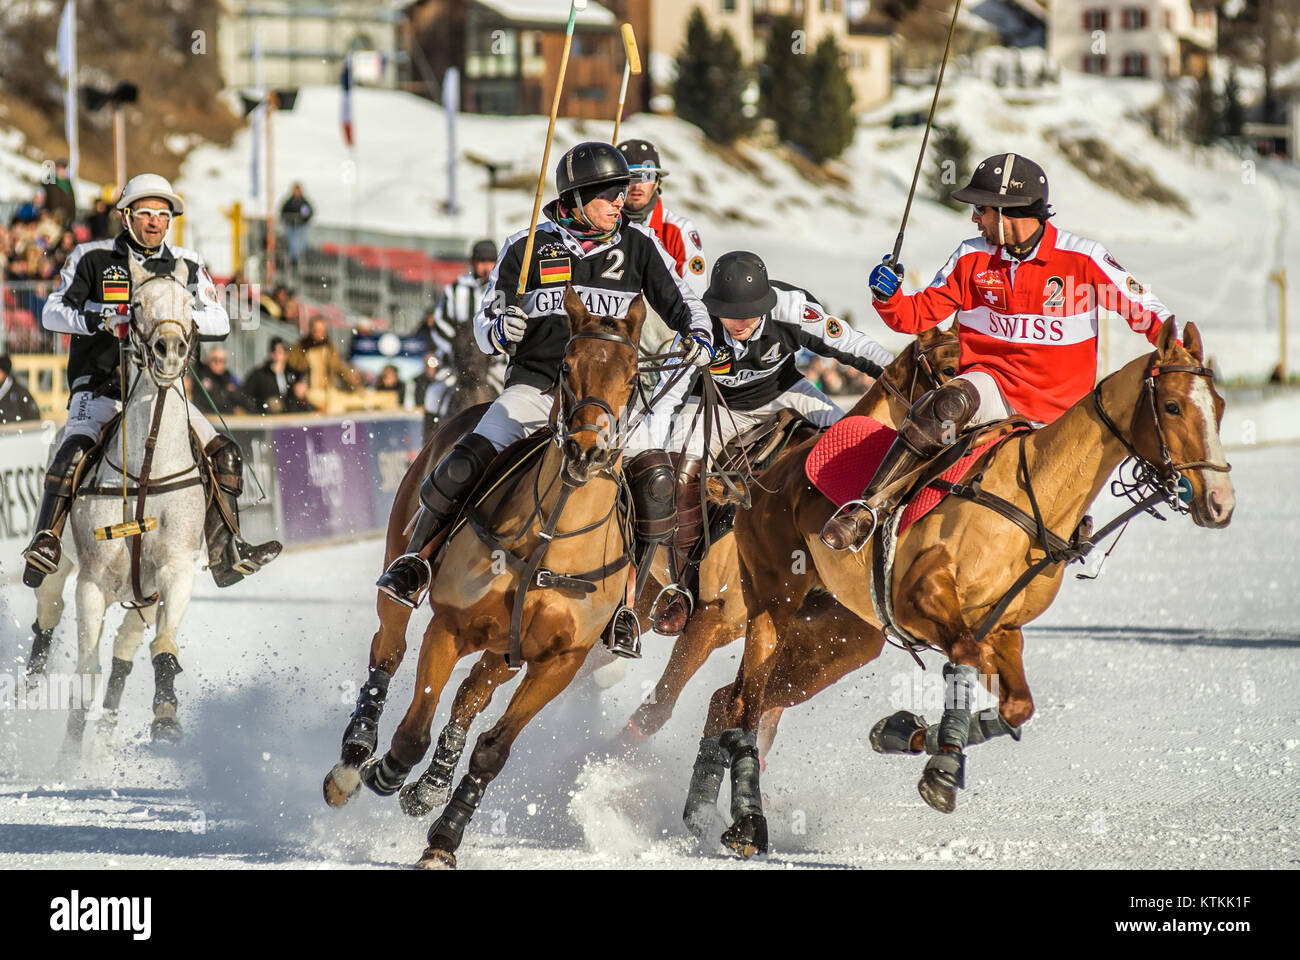 Polo Player during the Snow Polo World Cup 2011 Match Germany-Switzerland, St.Moritz, Switzerland.   Polo Spieler - Stock Image